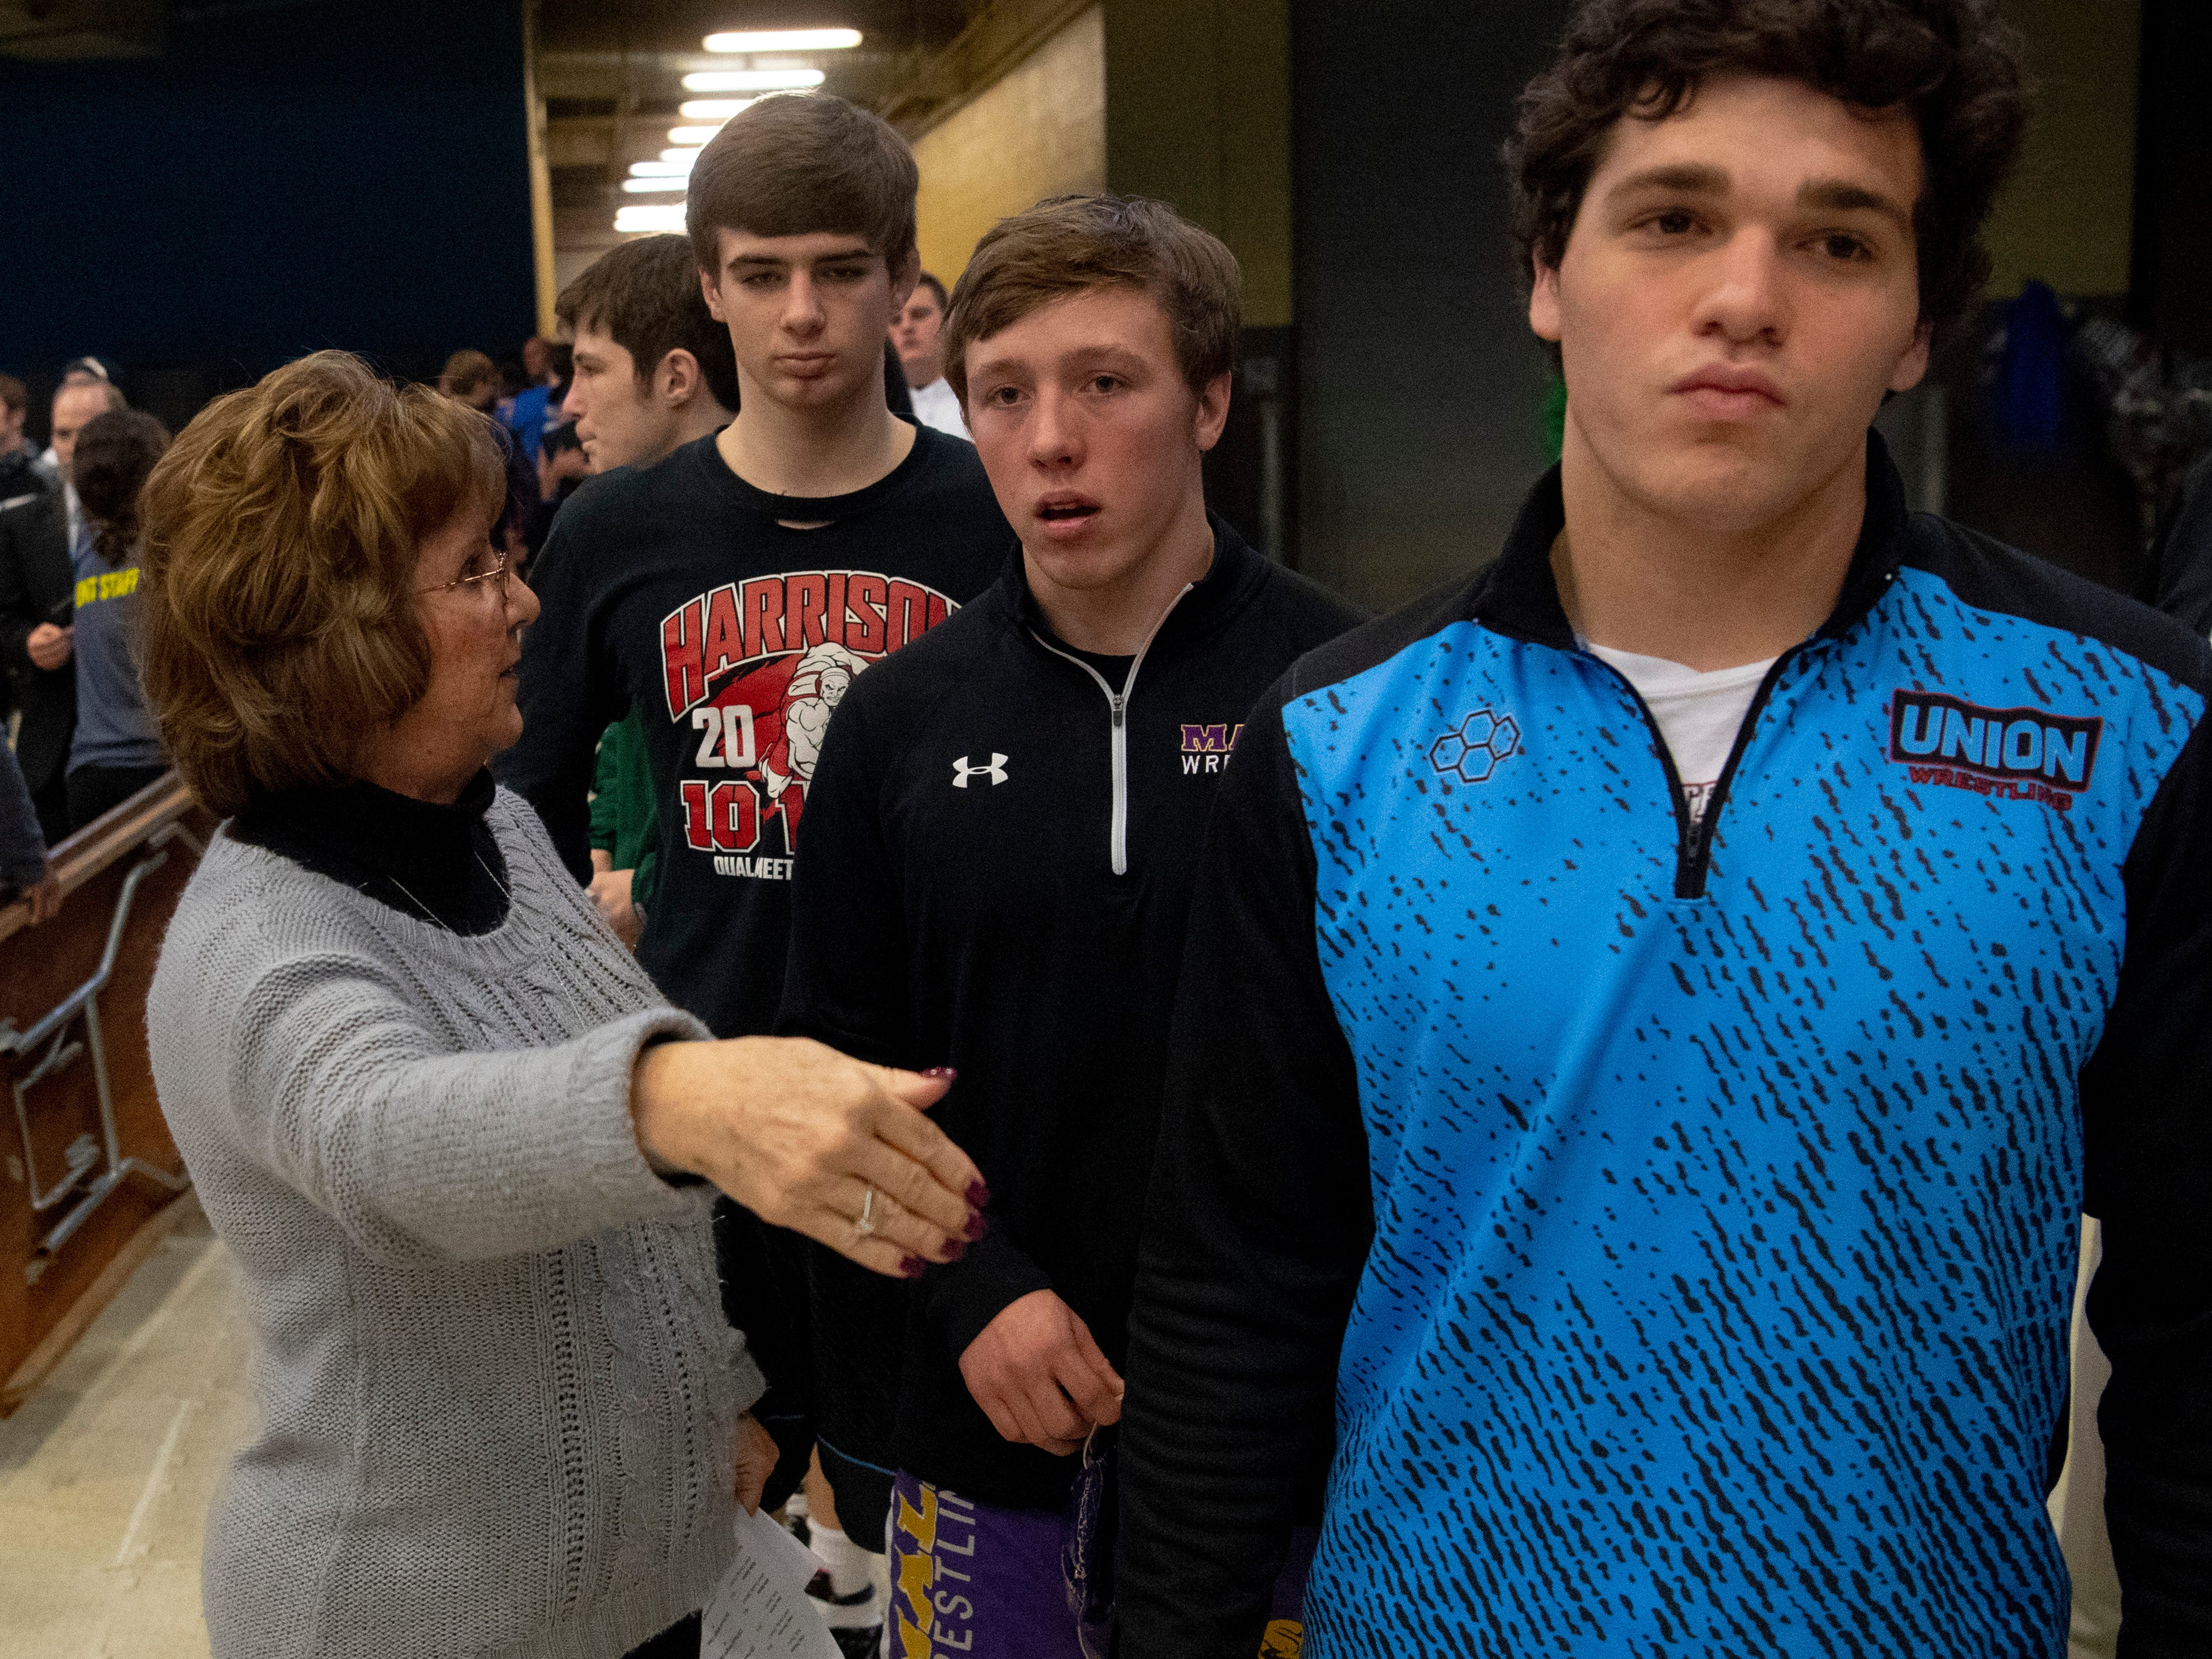 Union County's Micah Ervin prepares to take the floor for introductions at the KHSAA State Wrestling Championships at the Alltech Arena in Lexington, Ky., Saturday afternoon.